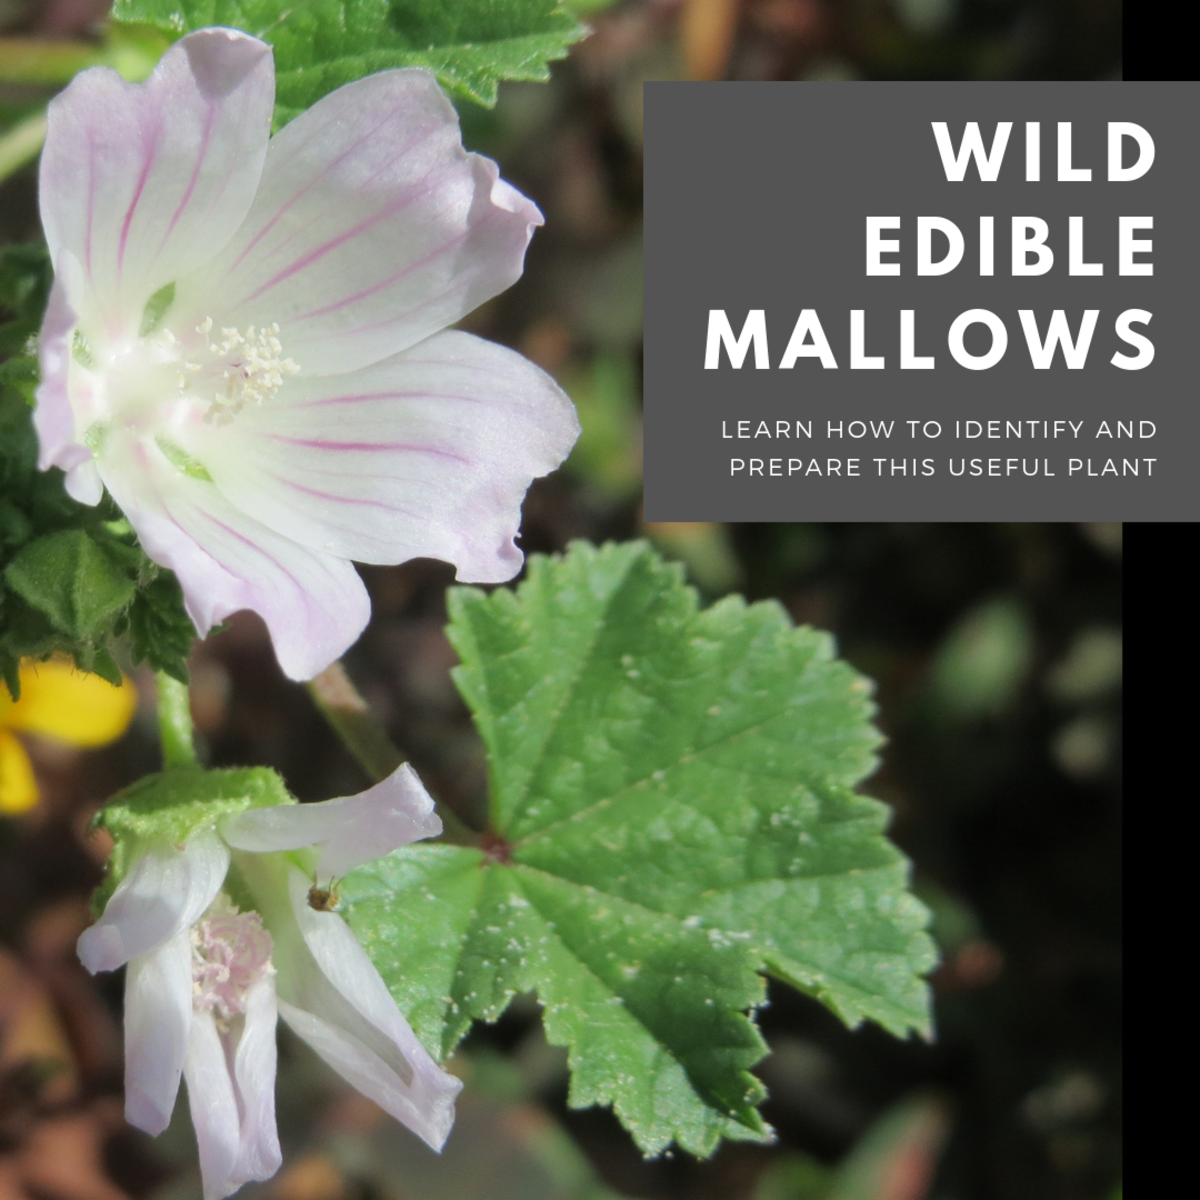 How to Find and Prepare Nutritious, Edible Mallows